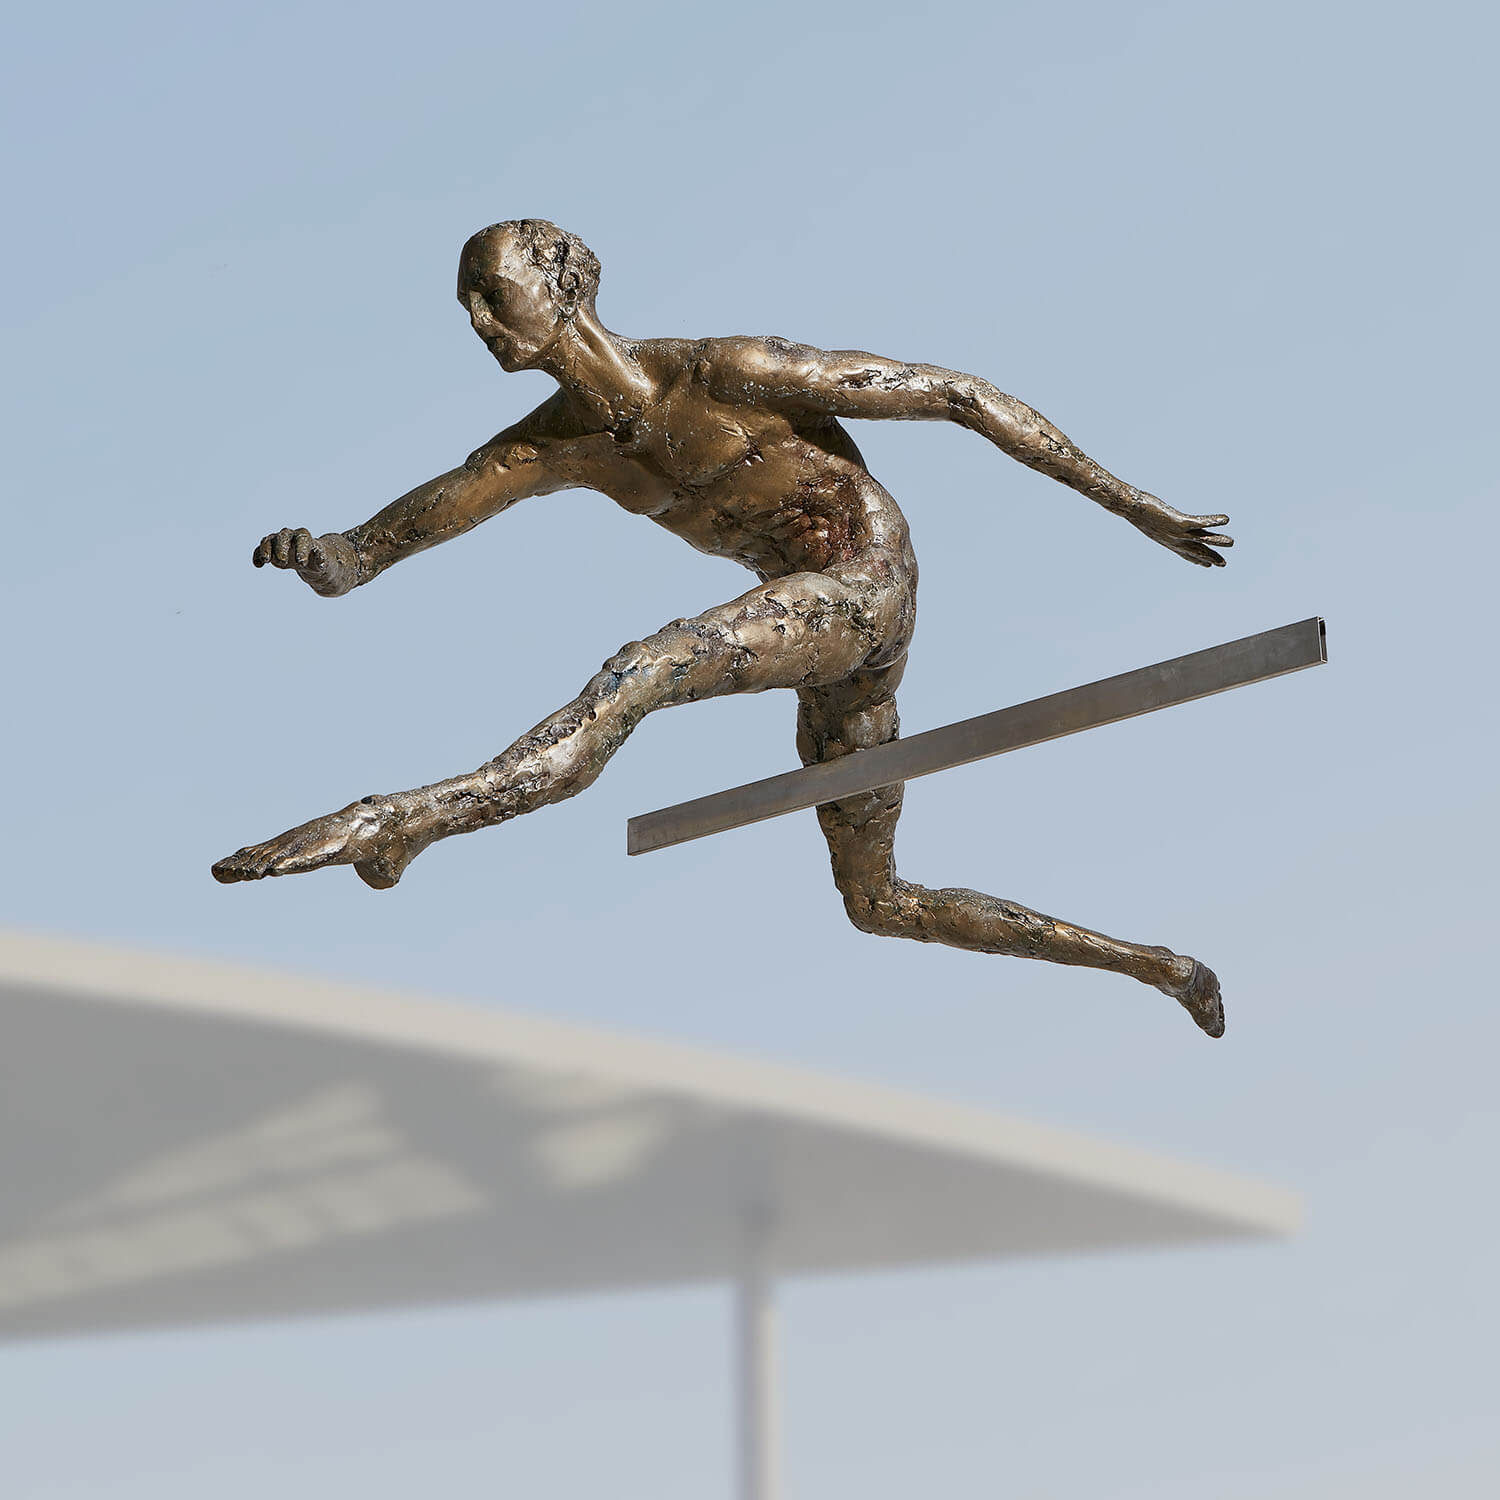 3. Atleta III / An Athlete III